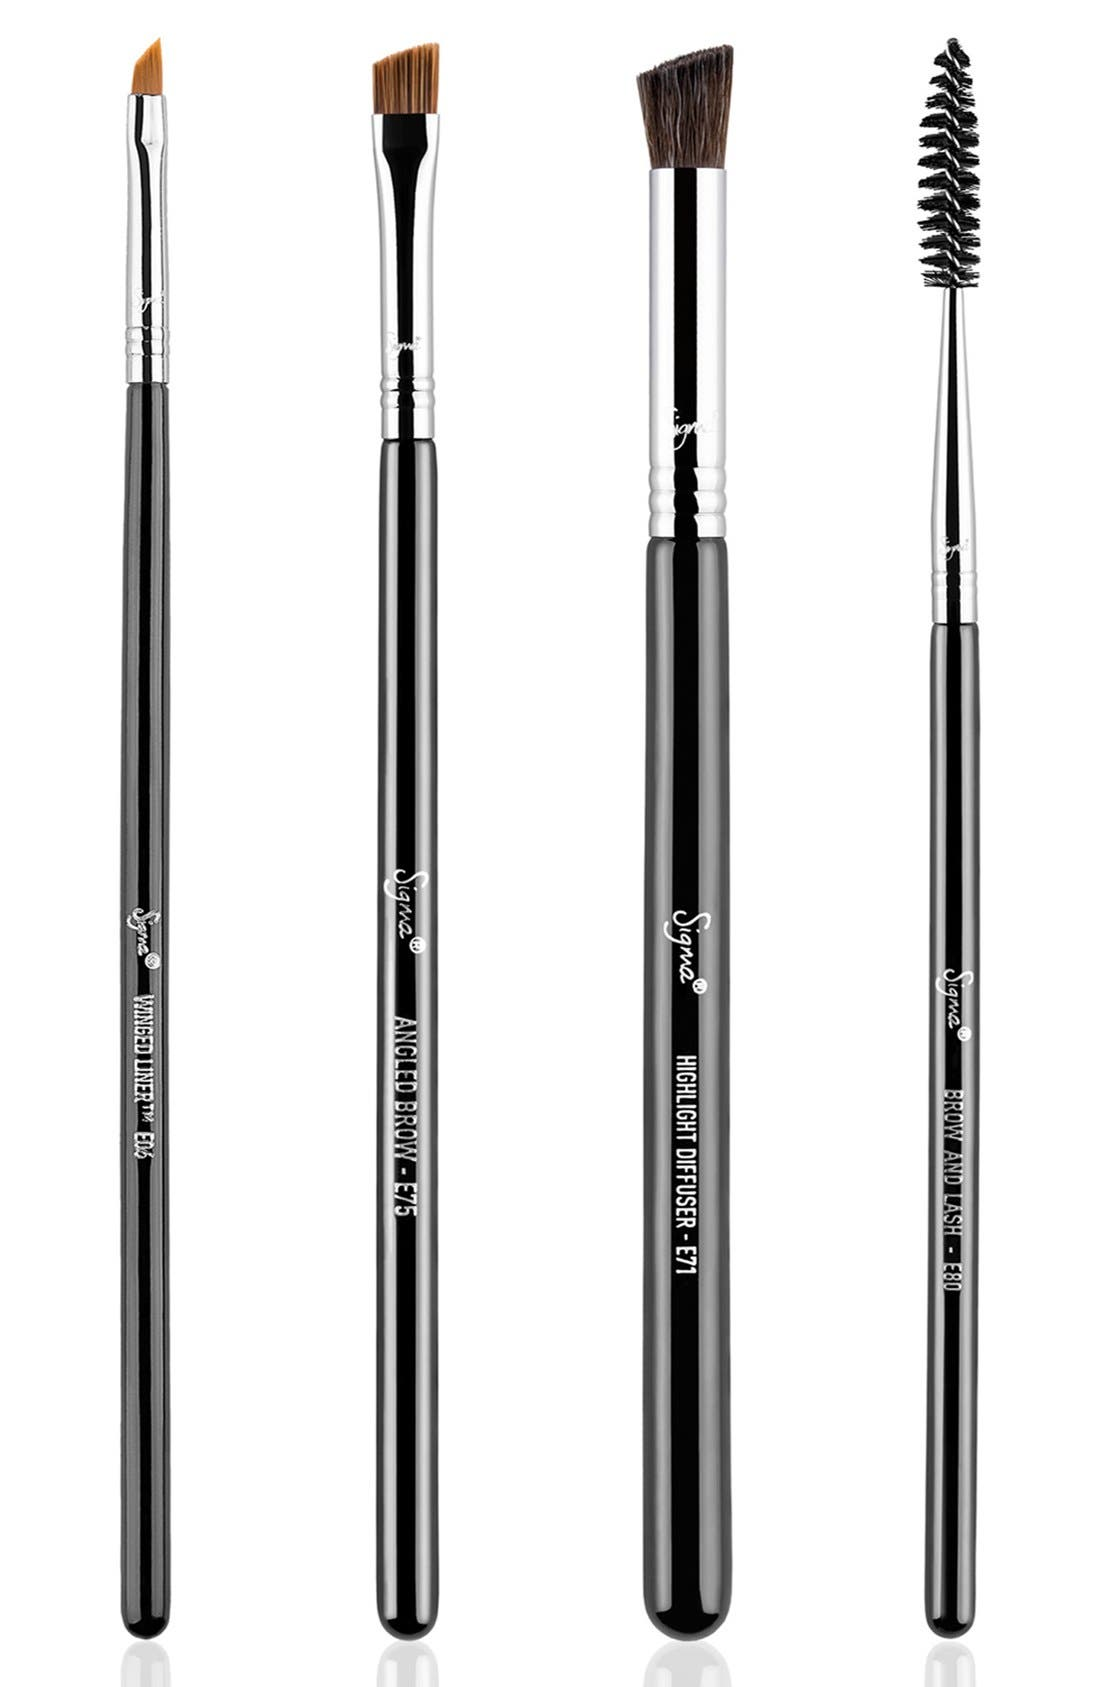 Brow Goals Brush Set,                             Main thumbnail 1, color,                             000